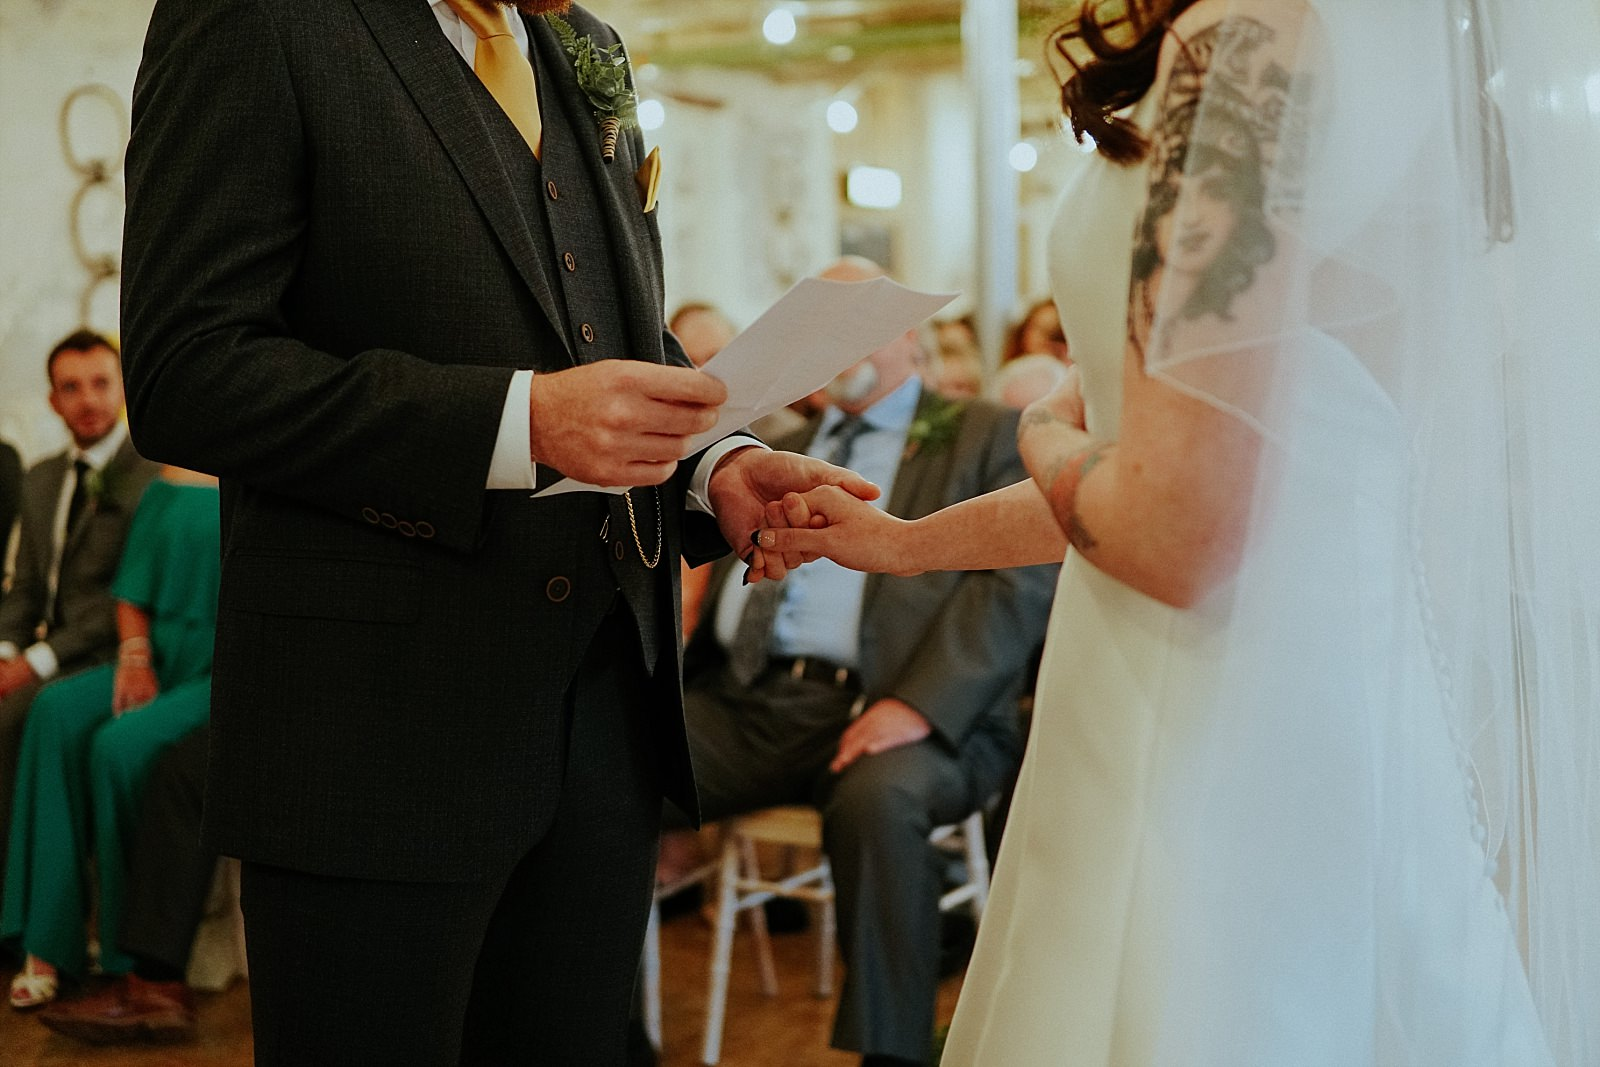 grooms reading his own vows